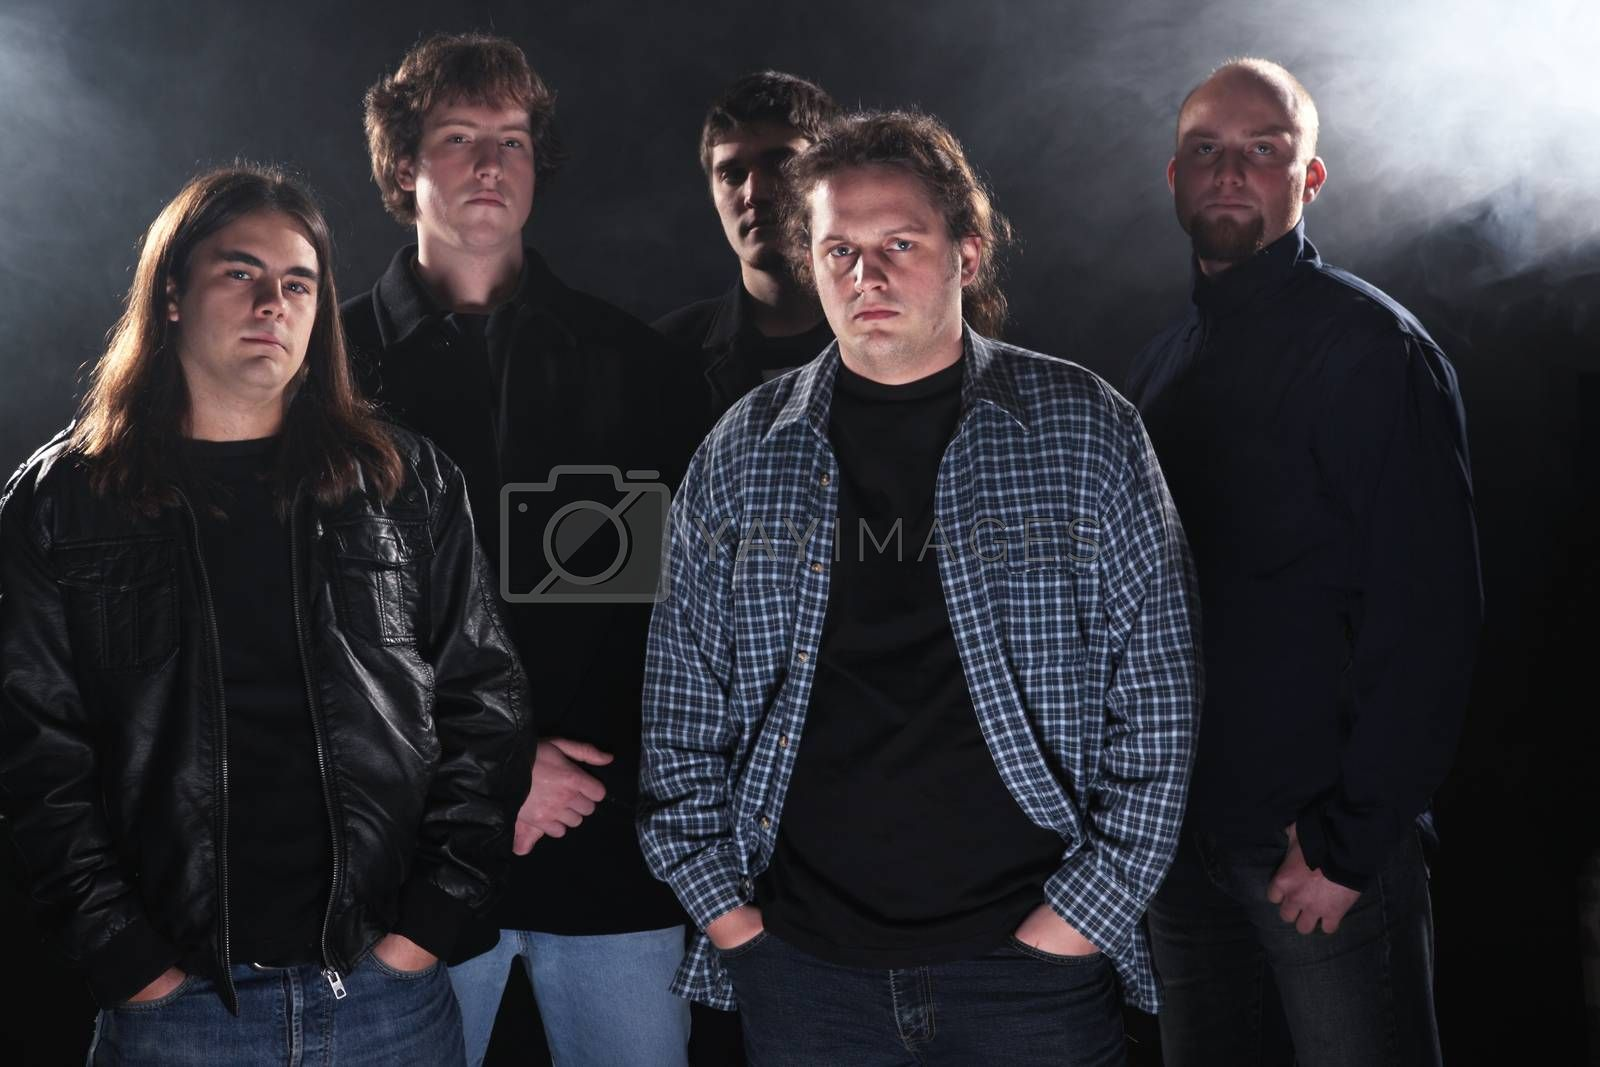 Group portrait of a rock band.